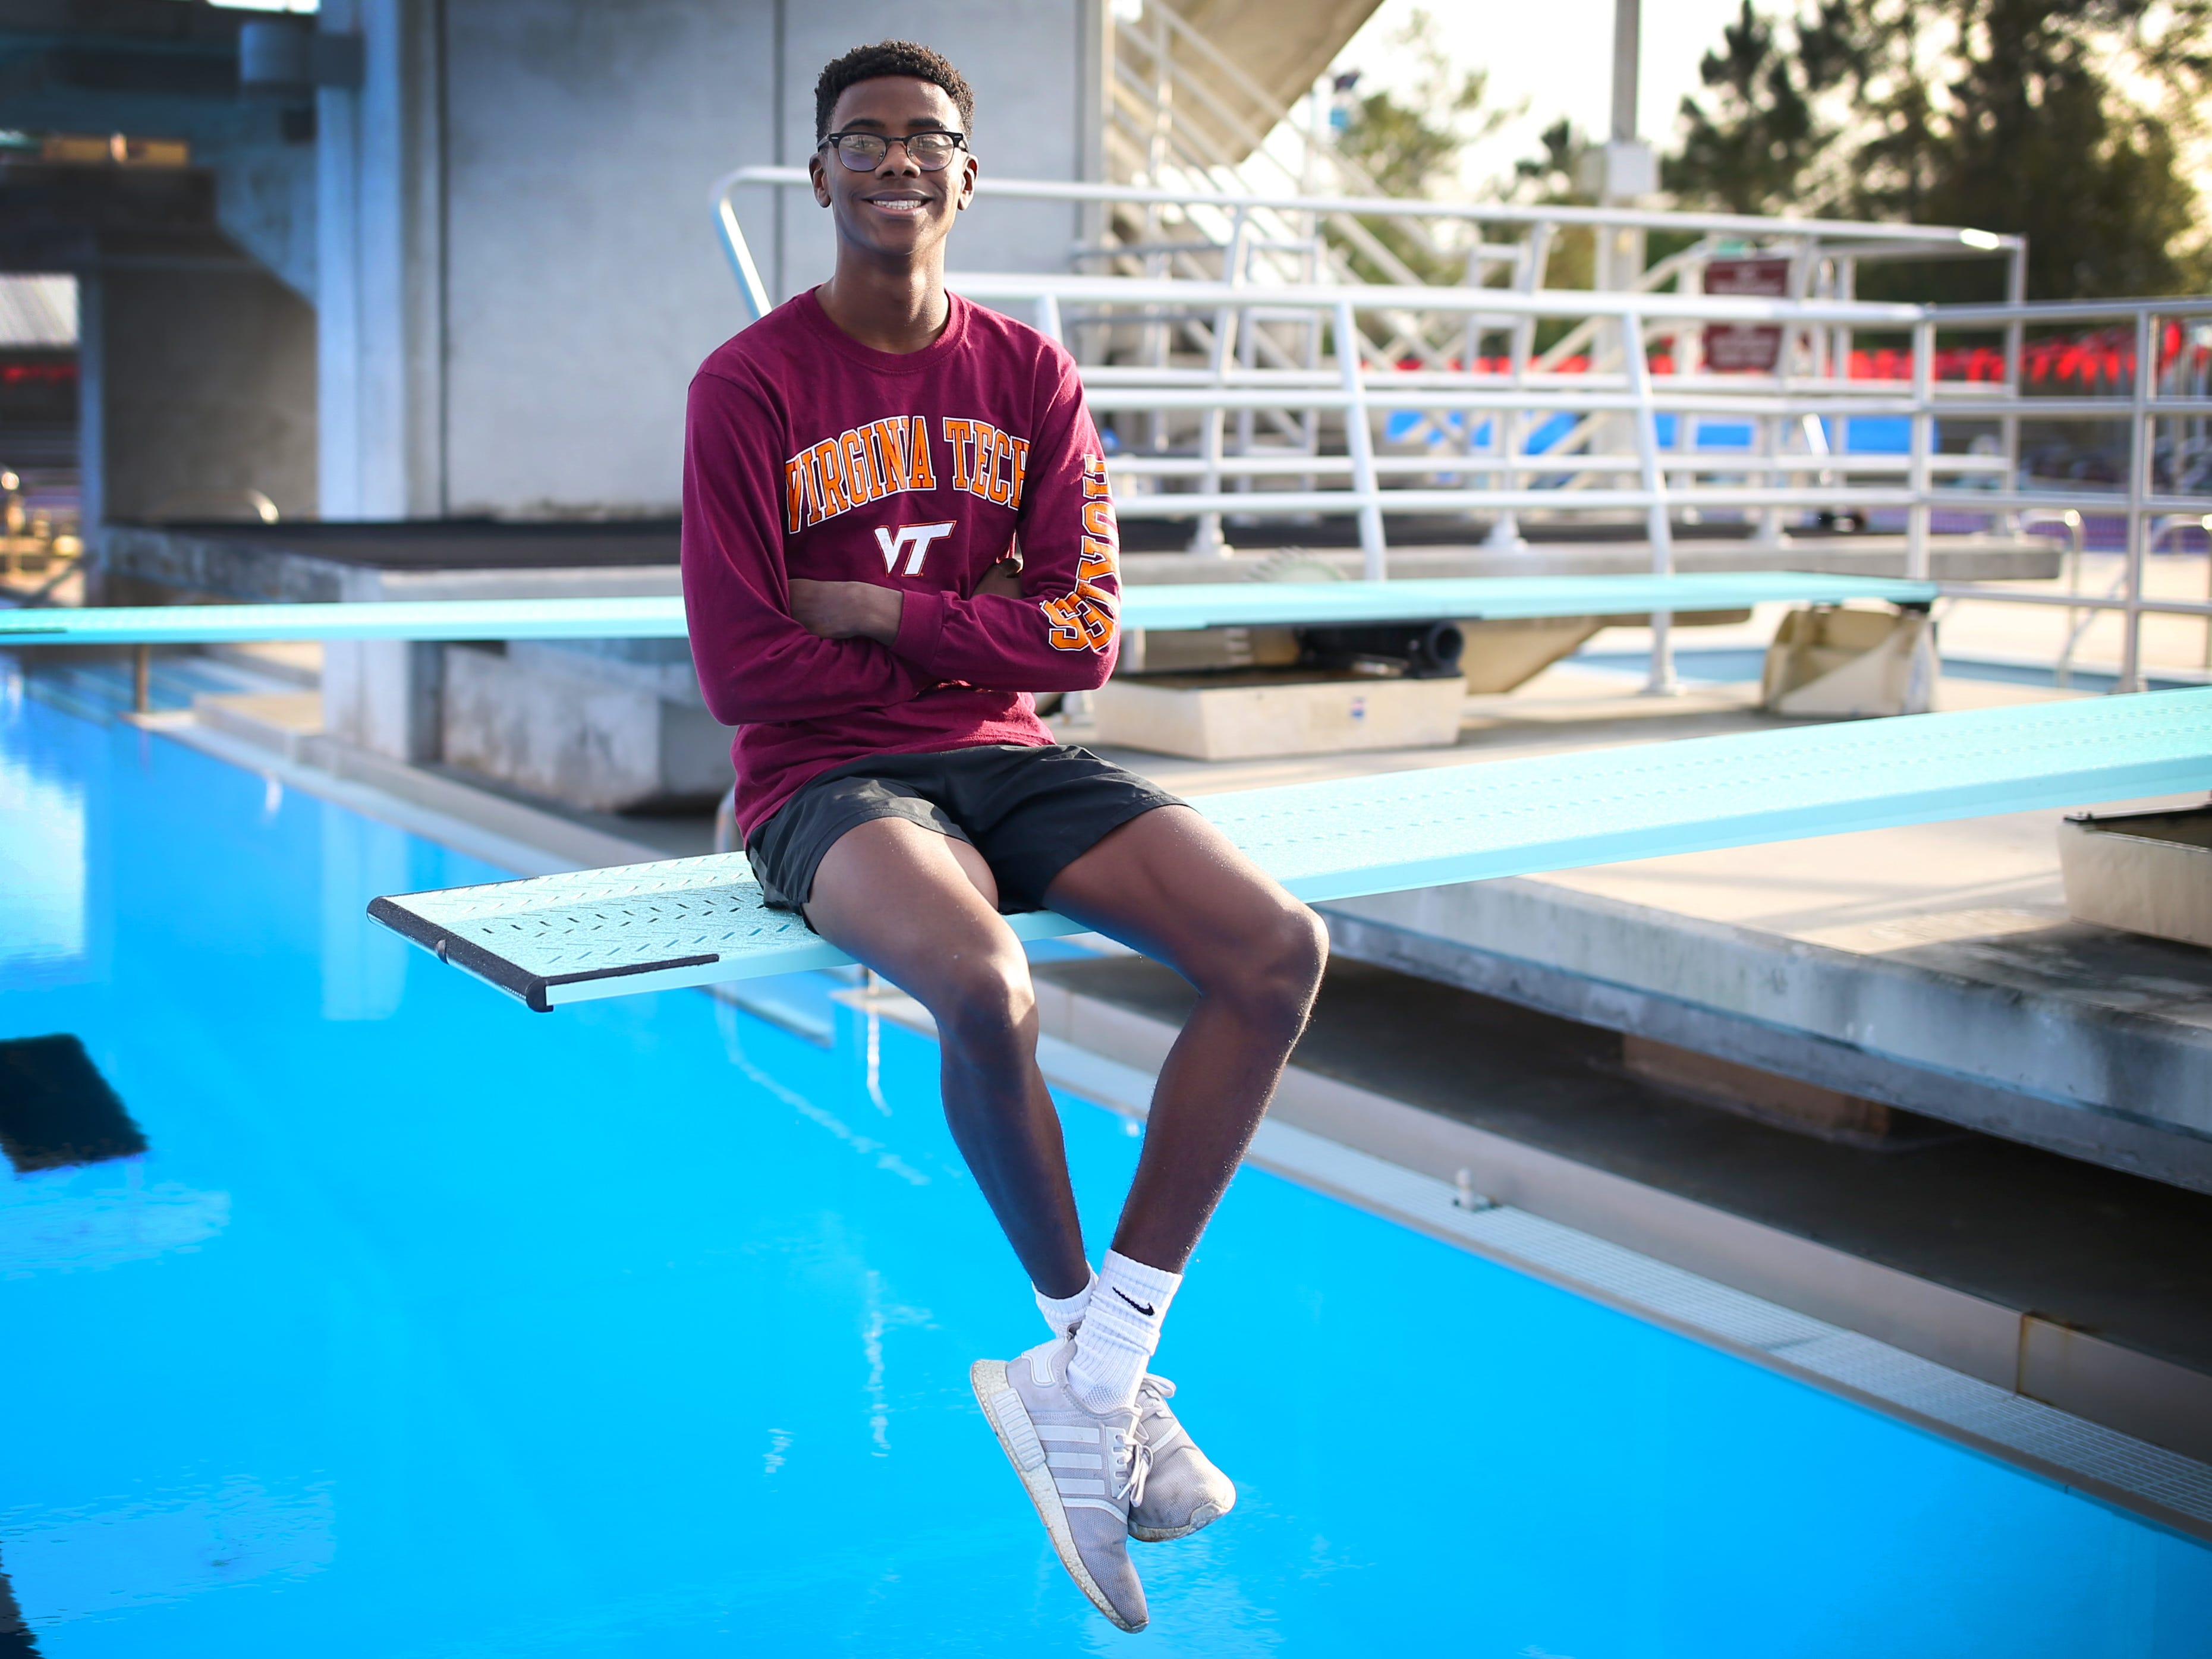 Leon senior Taj Cole was named the 2018 All-Big Bend Diver of the Year in boys swimming and diving after capturing a Class 3A state title in 1-meter diving, recording a score higher than anyone regardless of class over the previous 10 years. It is the second straight year Cole, a Virginia Tech signee, was named Diver of the Year.